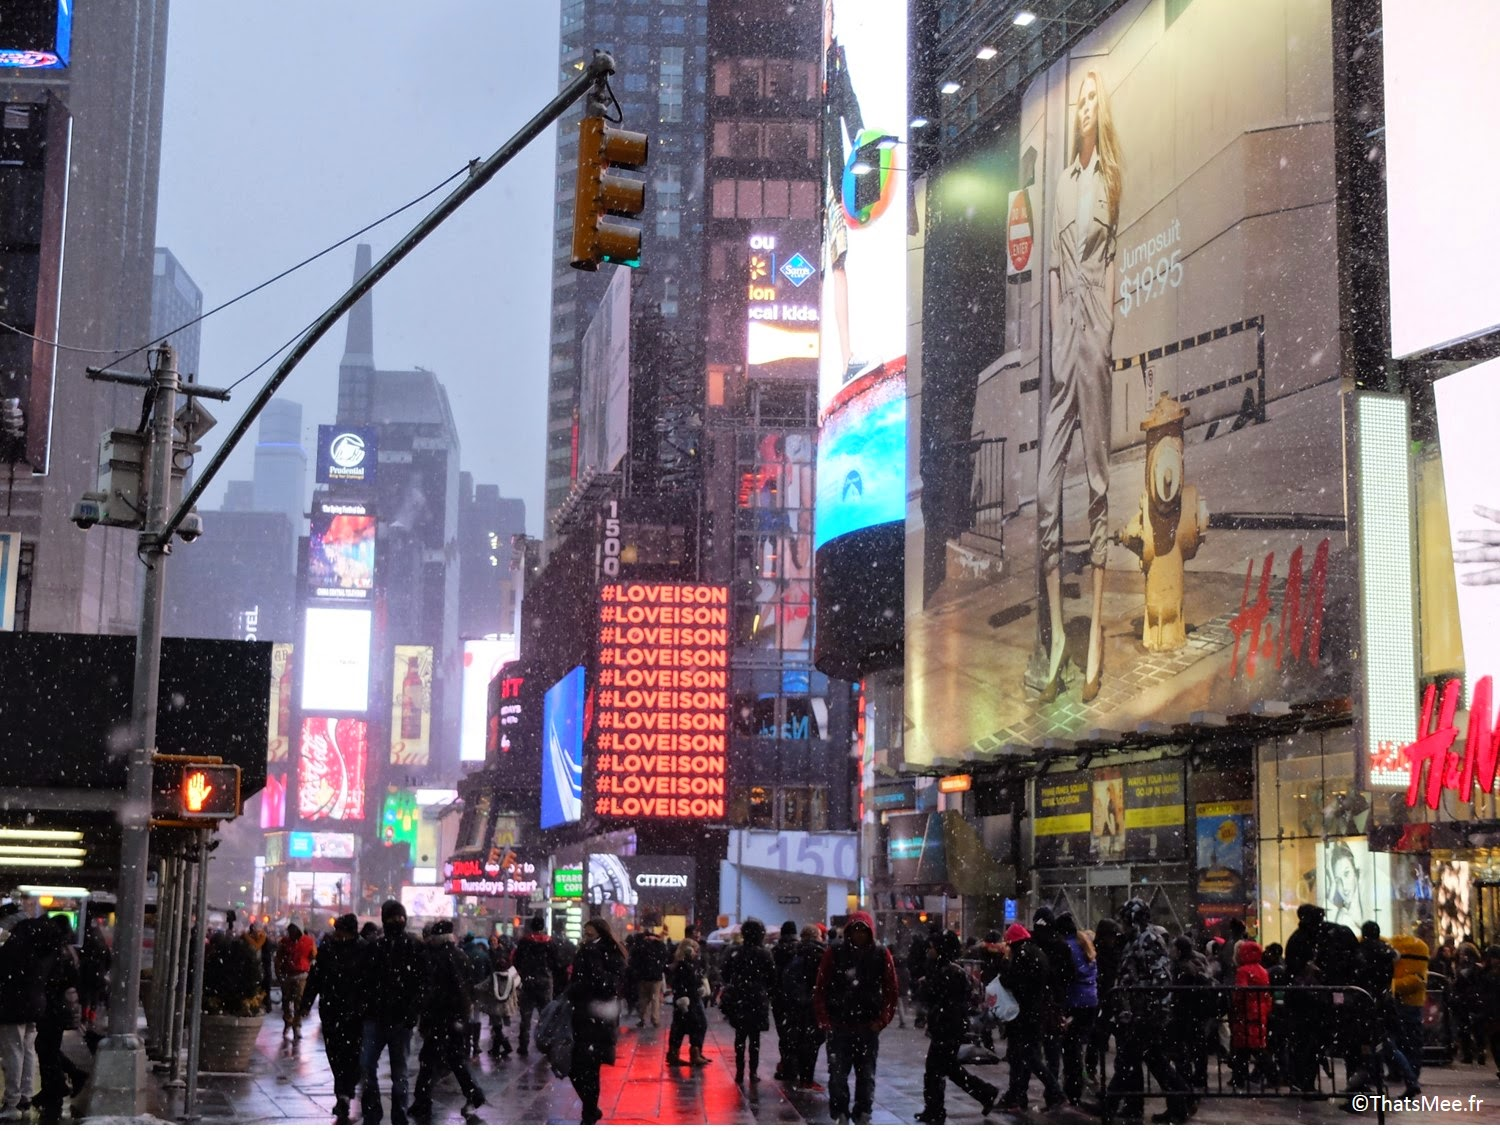 NY visiter New-York Times Square et Broadway chute de neige